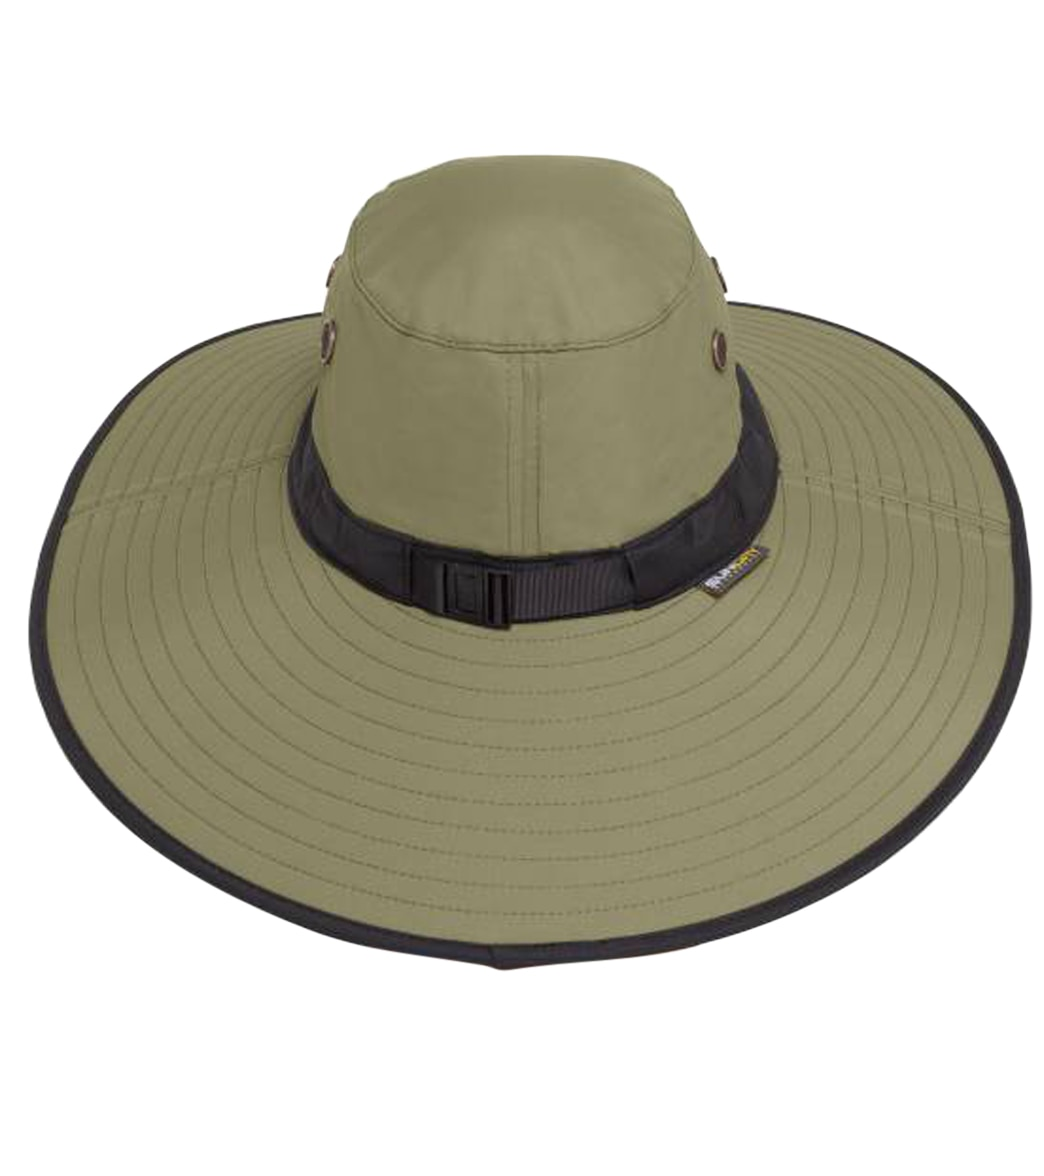 9ee55ae326a Sunday Afternoons Wide Brim River Guide Hat (Unisex) at SwimOutlet.com